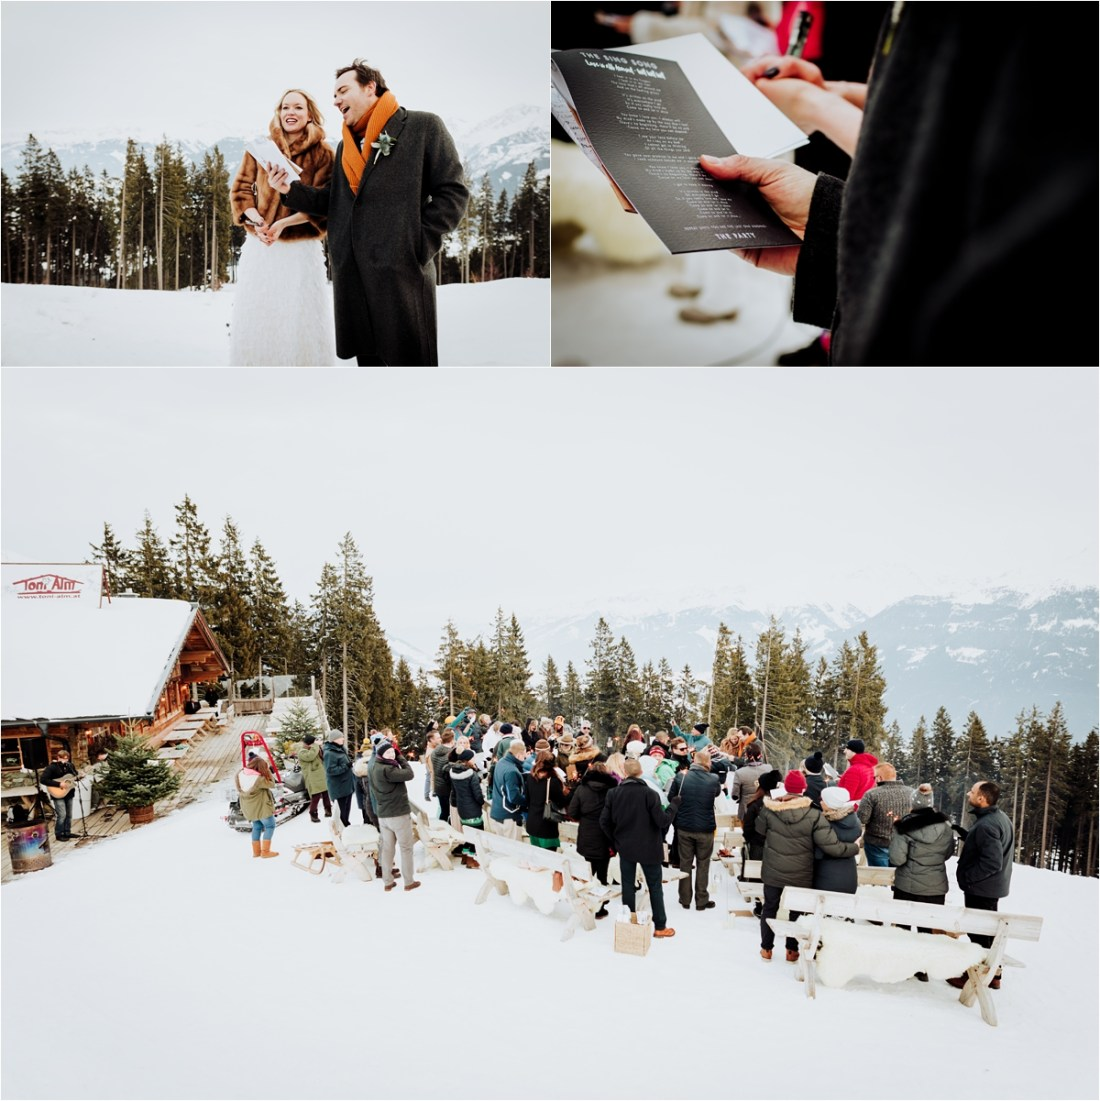 An outdoor wedding ceremony in winter in a ski resort in the Austrian Alps by Wild Connections Photography